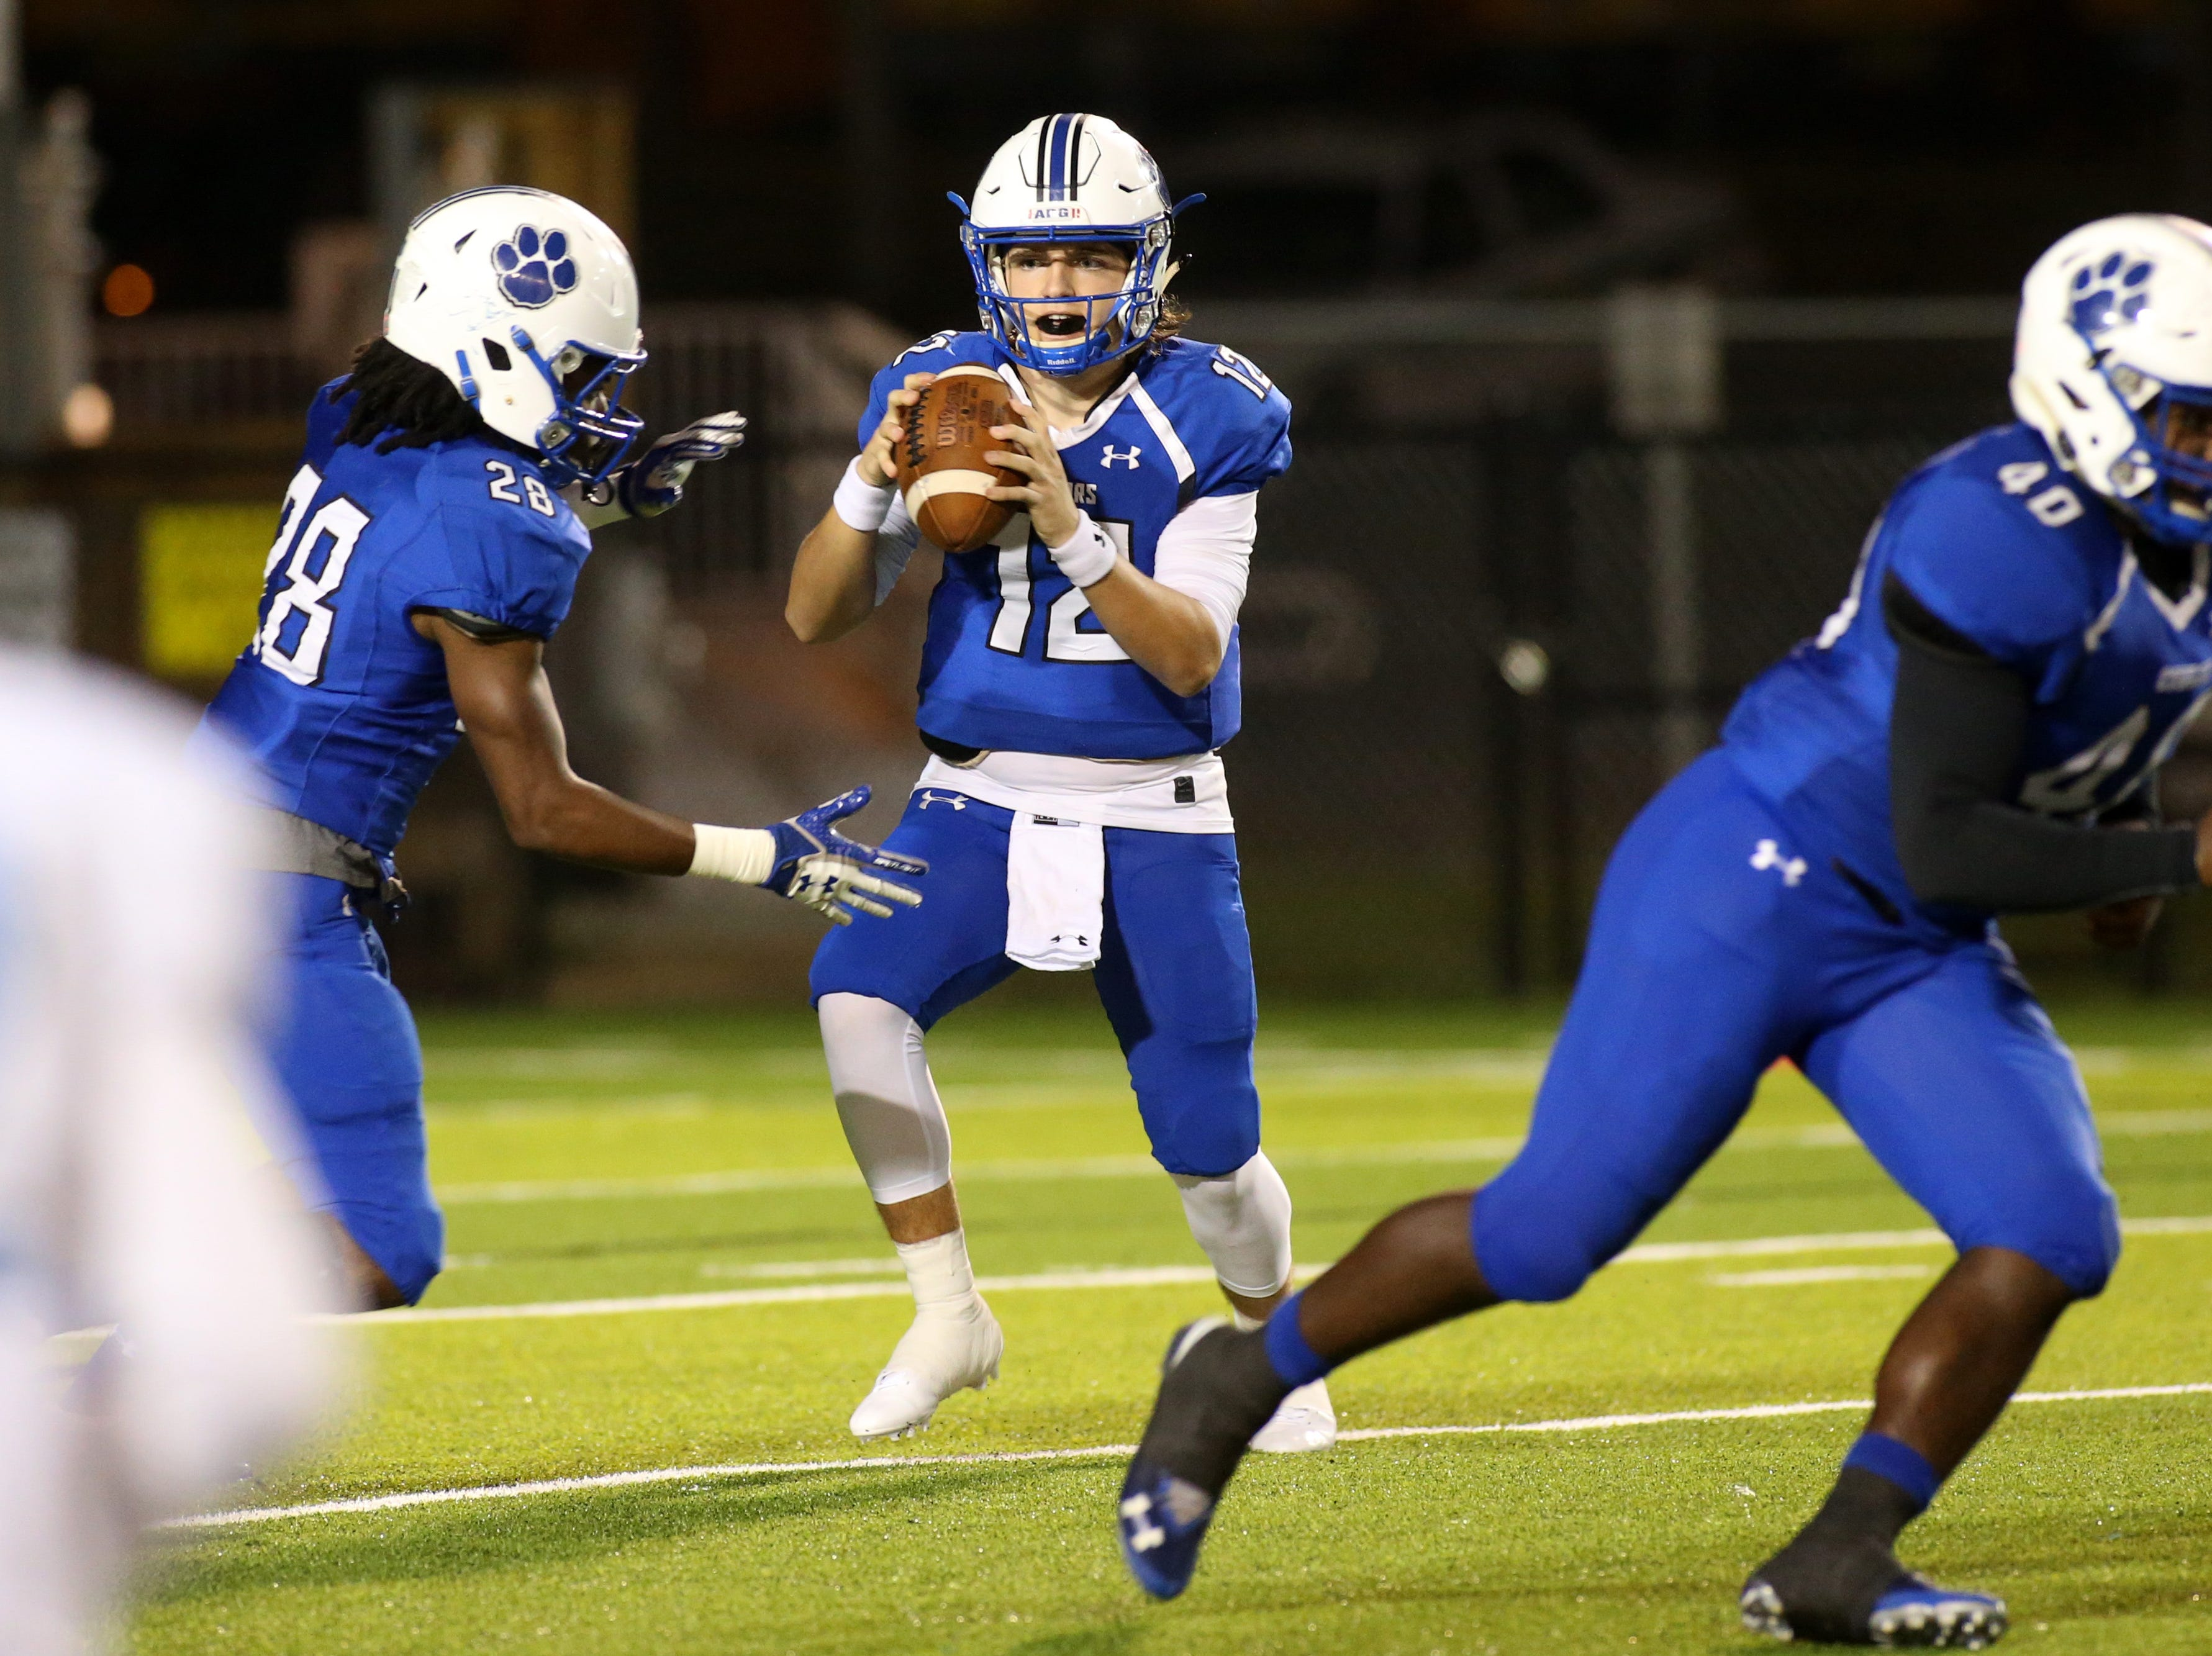 Godby quarterback, Tret Fisher looks to throw as the Ponte Vedra Sharks face off against the Godby Cougars, in the Region 1-5A quarterfinal high school football playoff game at Gene Cox Stadium, Friday, Nov. 9, 2018.